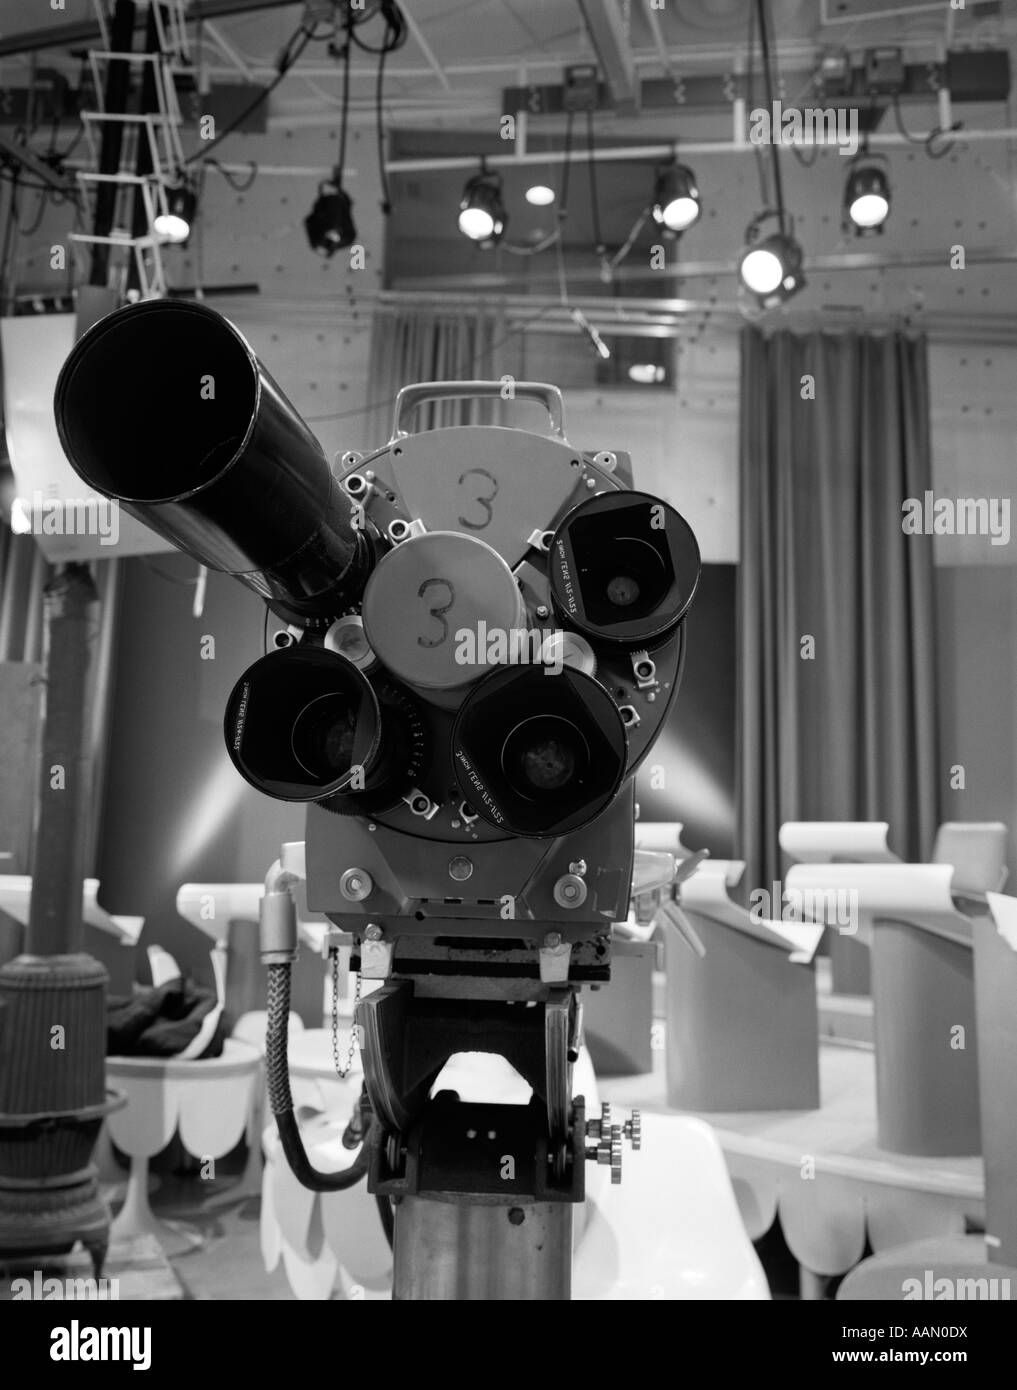 1960s CLOSE-UP OF TV CAMERA LENSES WITH STUDIO SET IN BACKGROUND - Stock Image